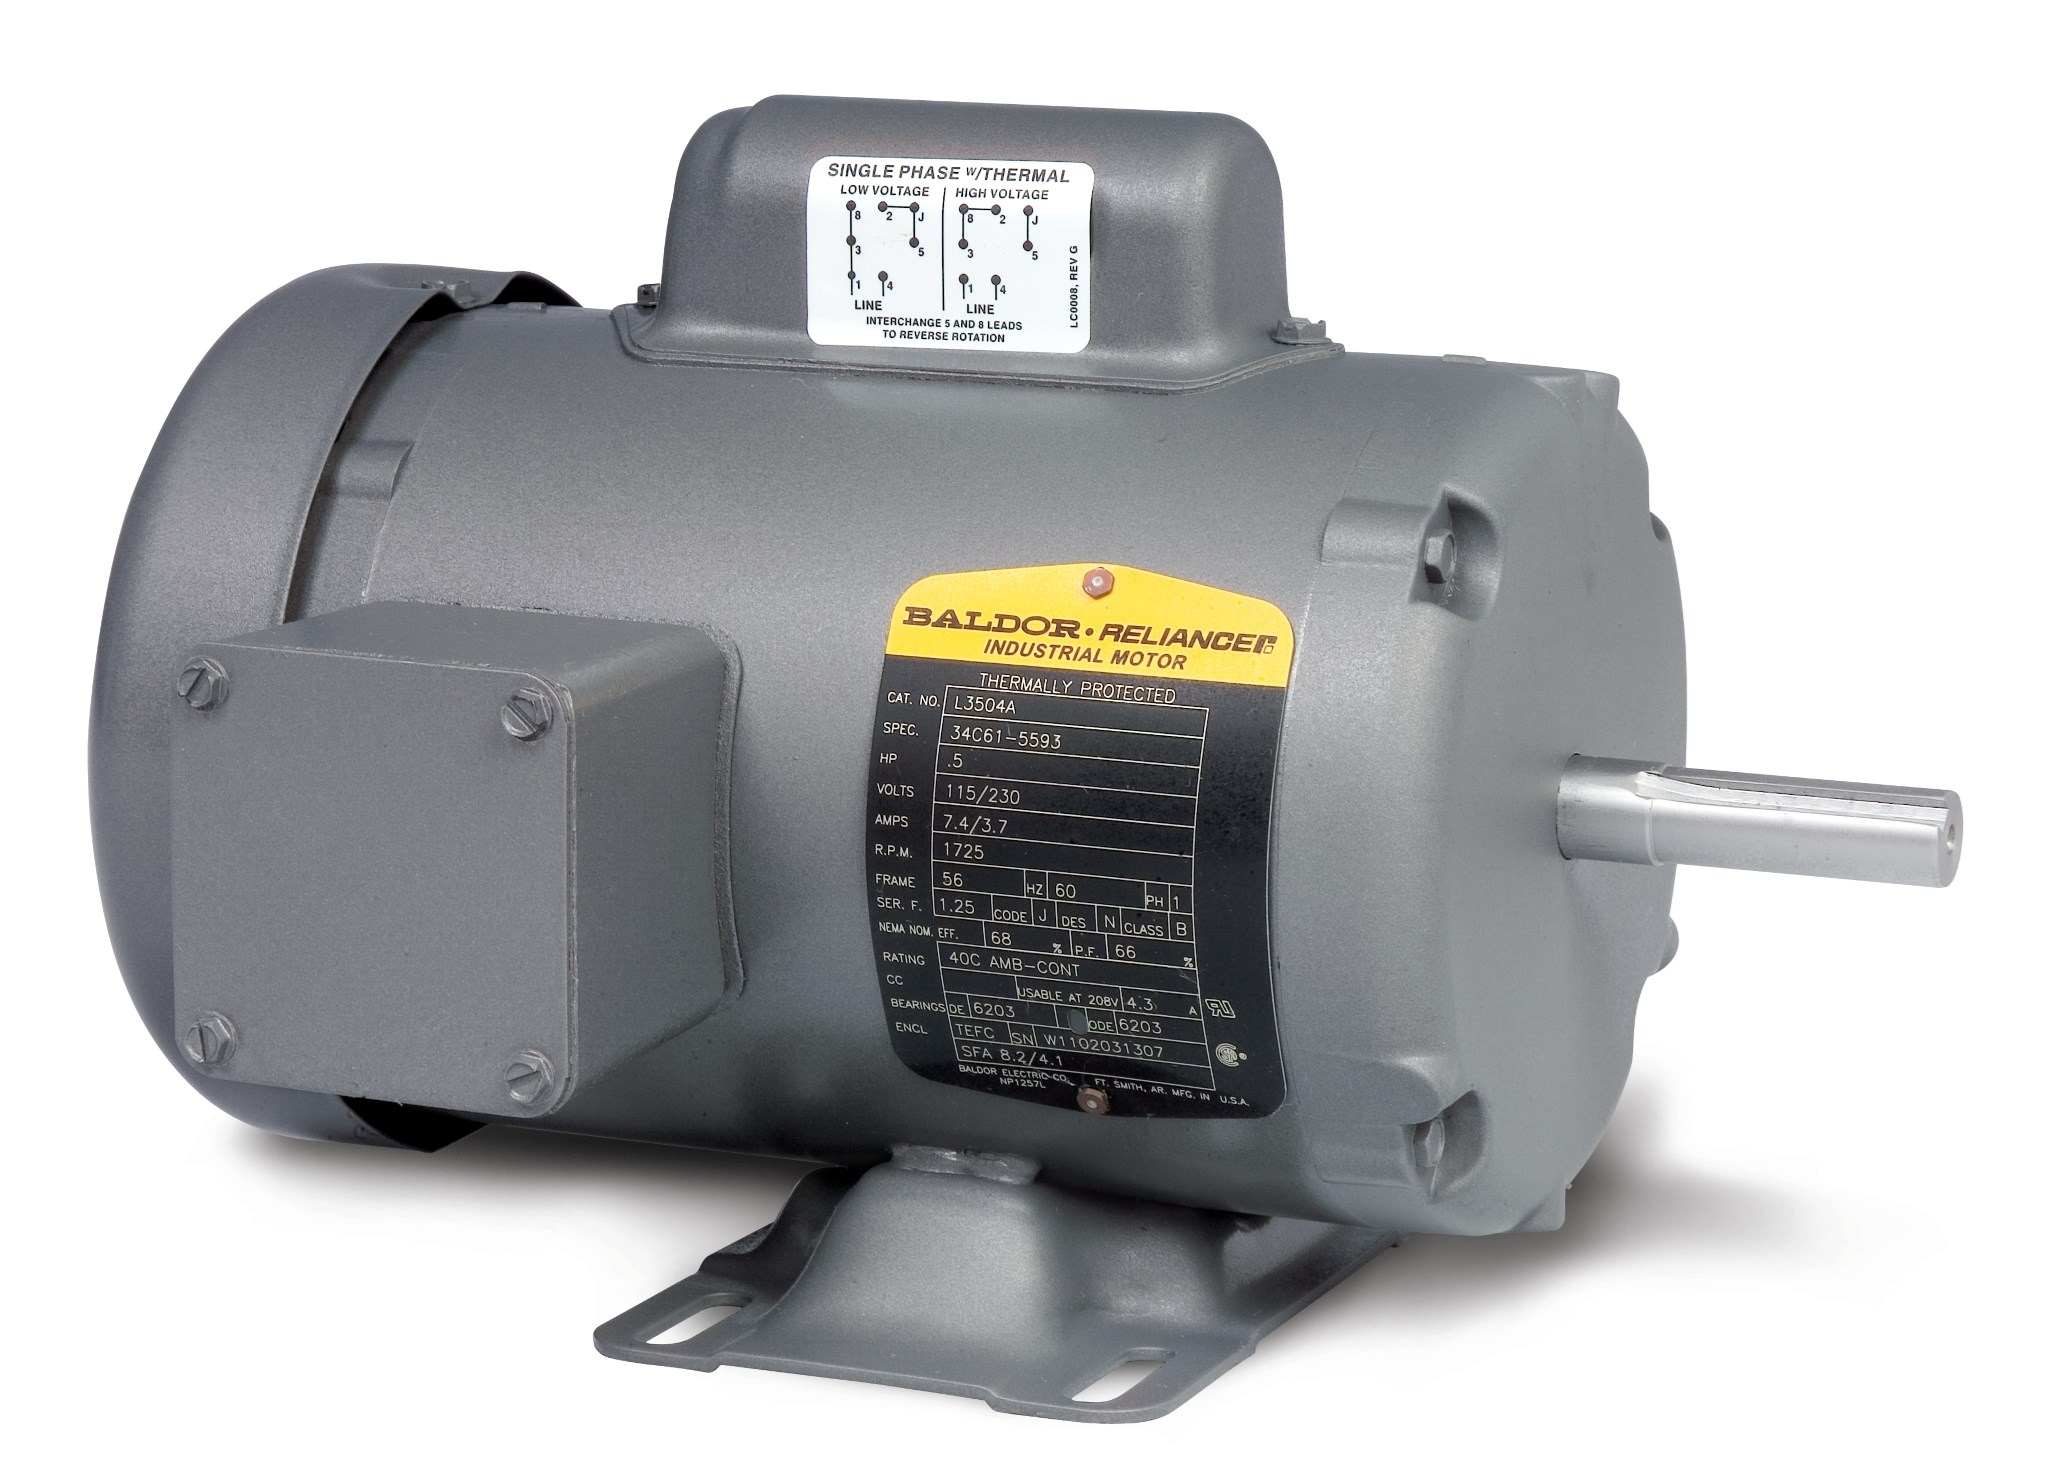 127?bc=white&as=1&h=256&w=256 l3504a product catalog baldor com baldor 5 hp motor wiring diagram at crackthecode.co